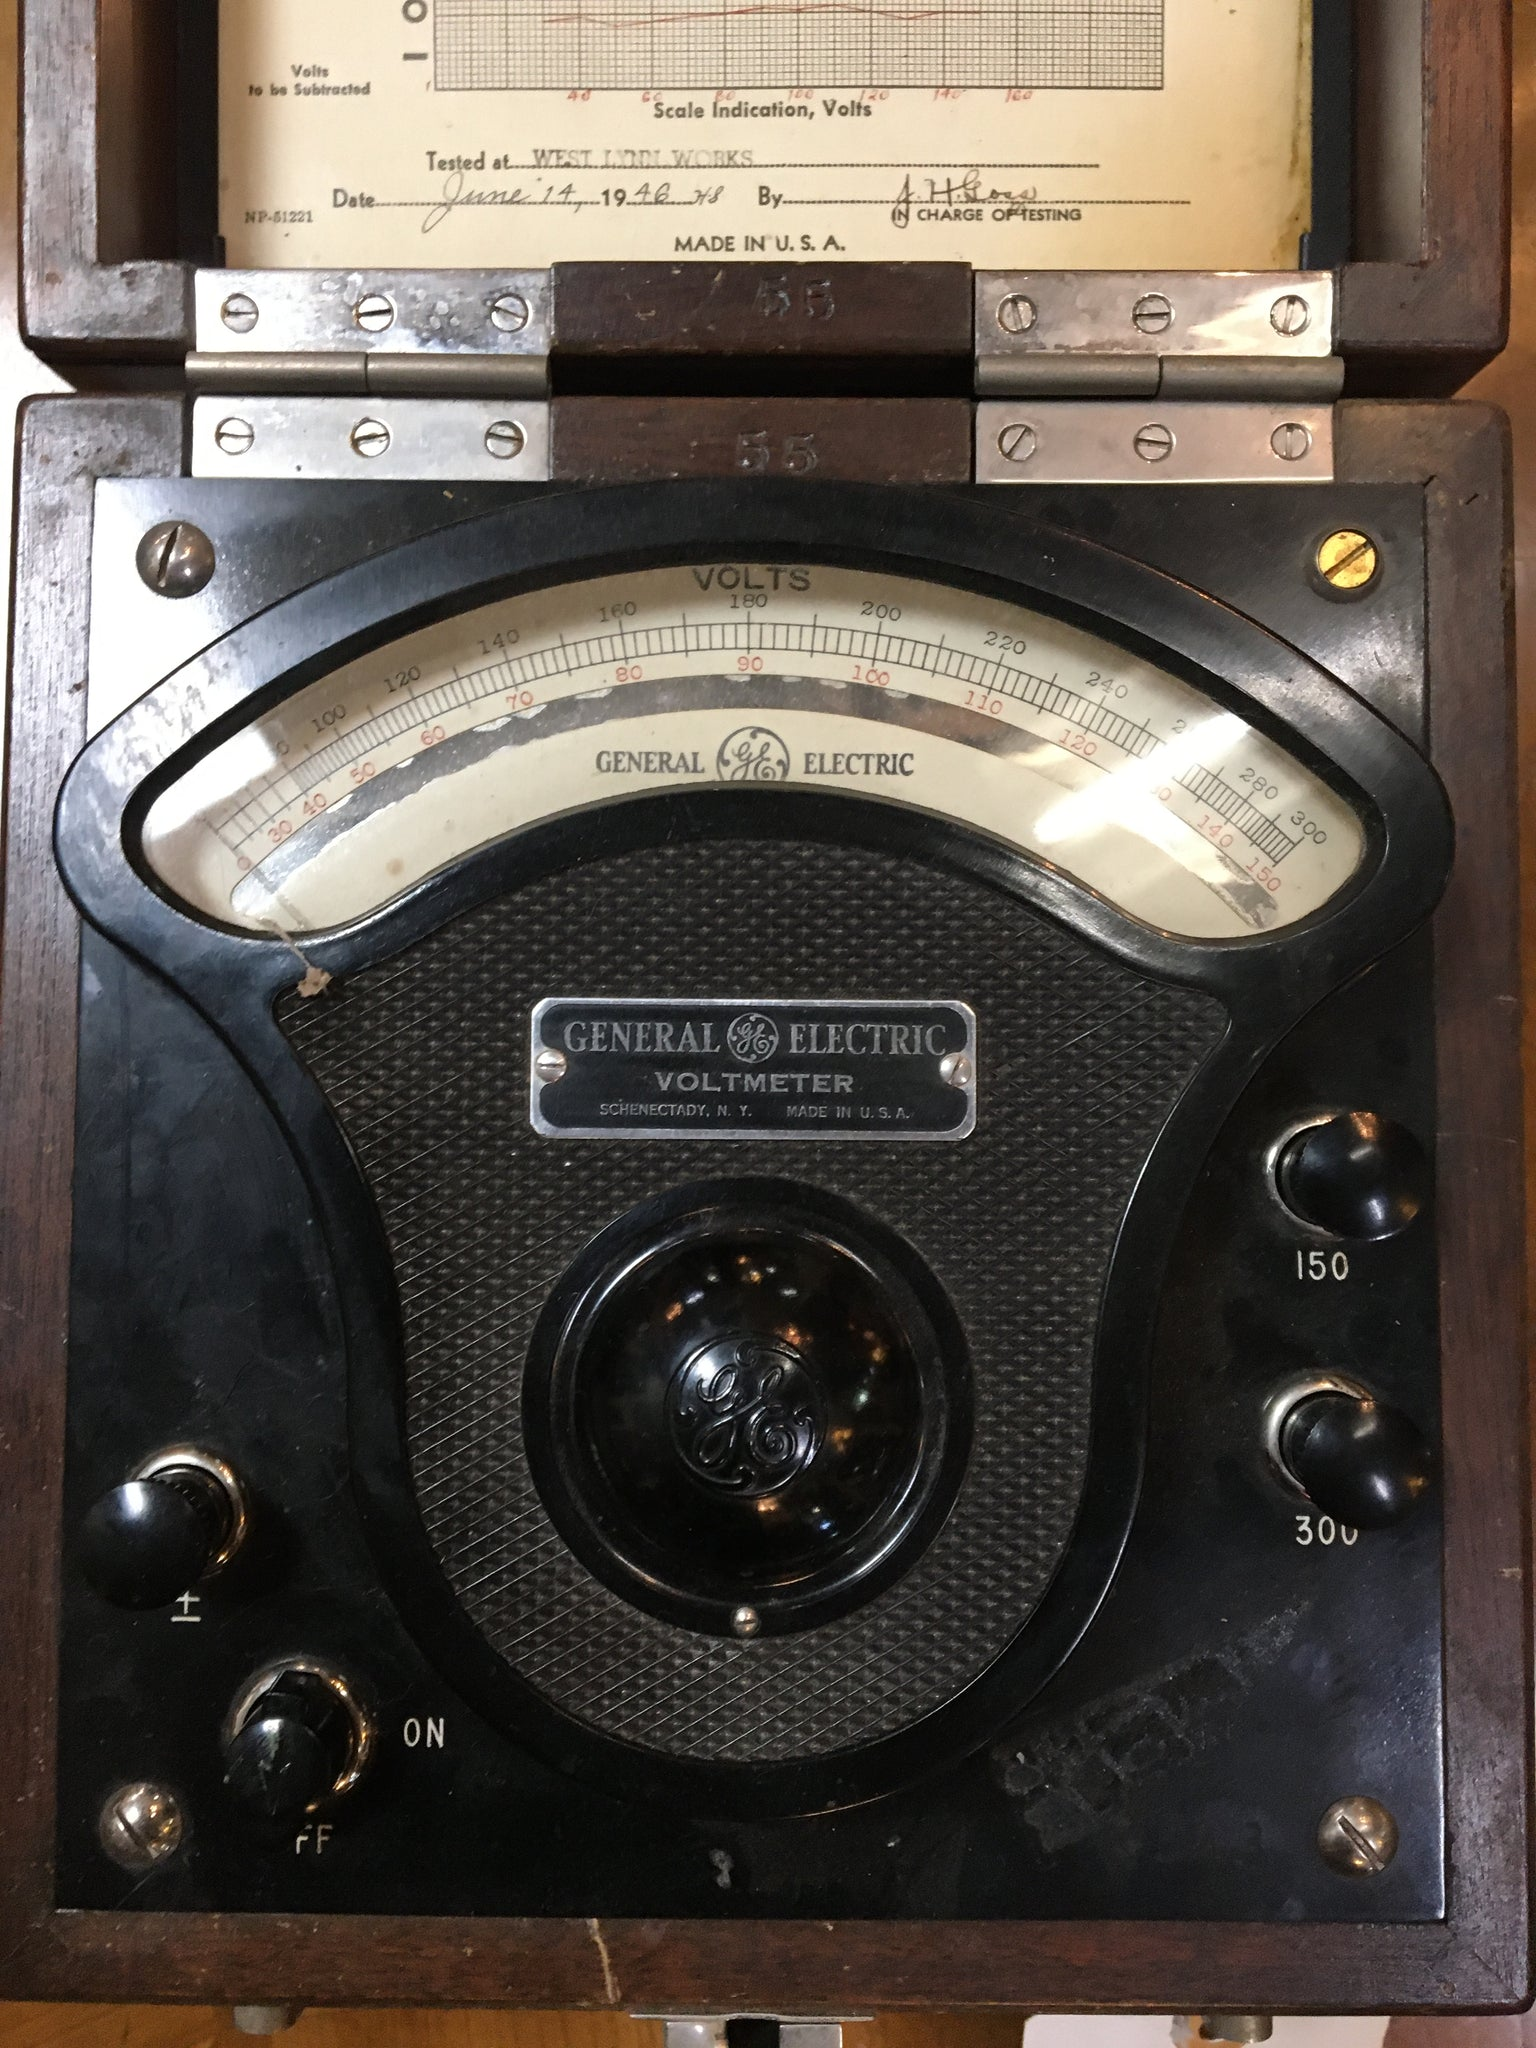 ANTIQUE GENERAL ELECTRIC C. 1946 VOLT METER IN A WOODEN CASE